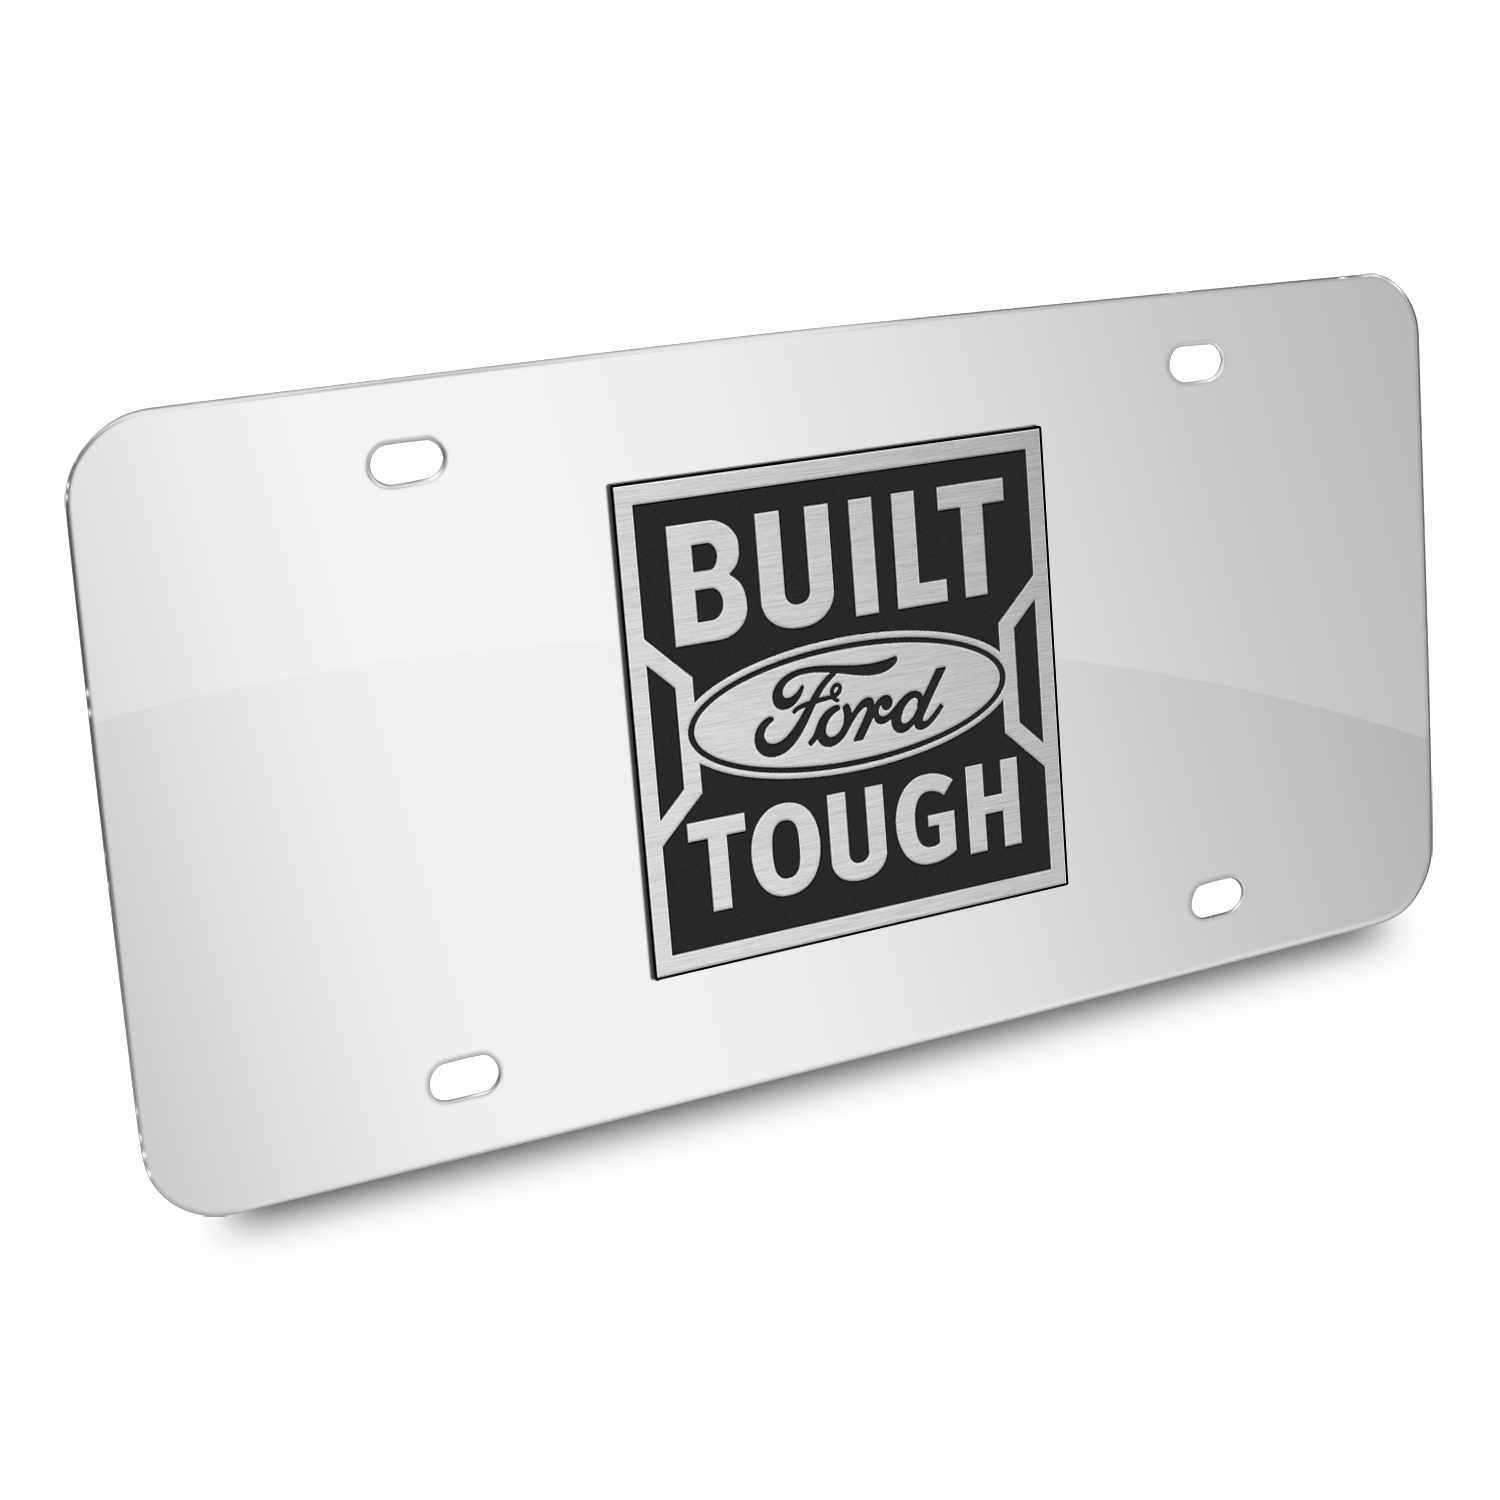 Ford Built Ford Tough 3D Mirror Chrome Stainless Steel License Plate